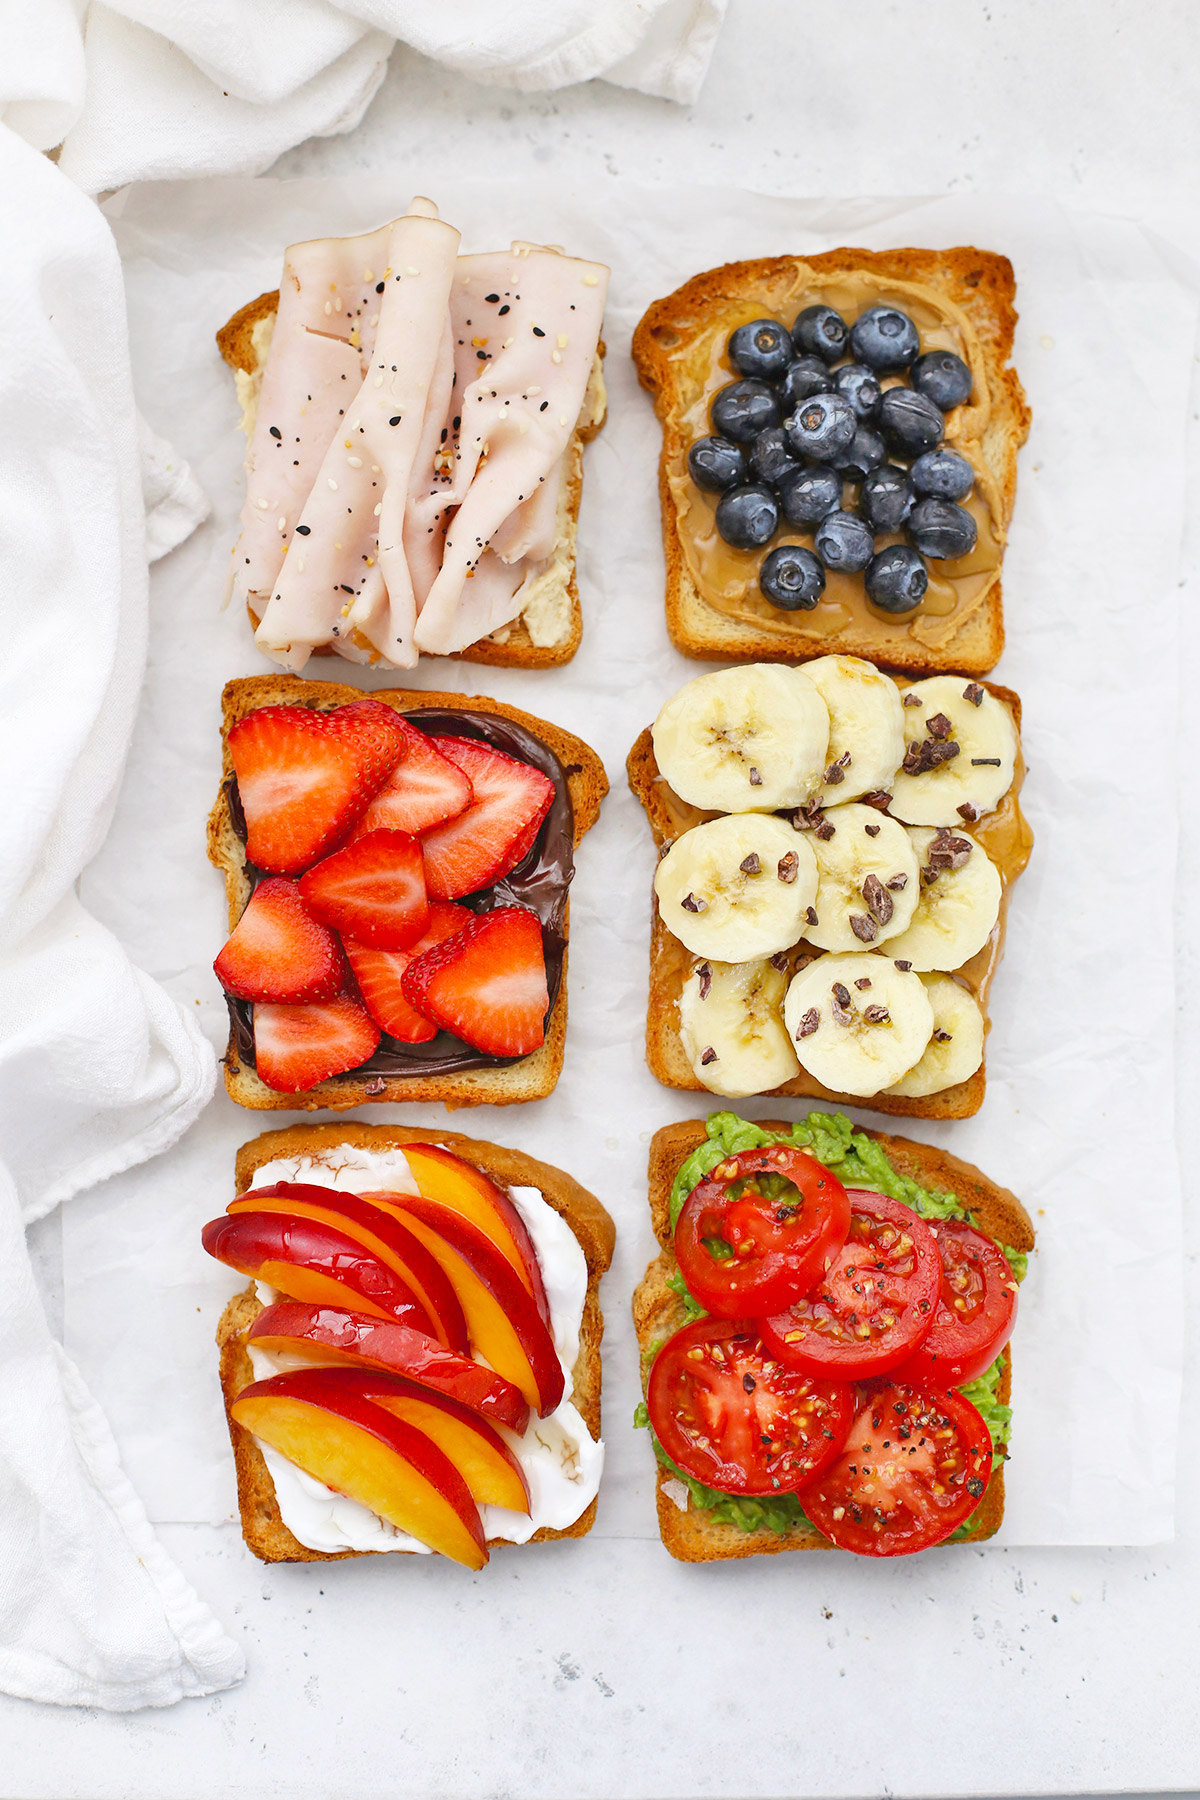 Six Slices of Gluten-Free toast with different toppings on a white background.